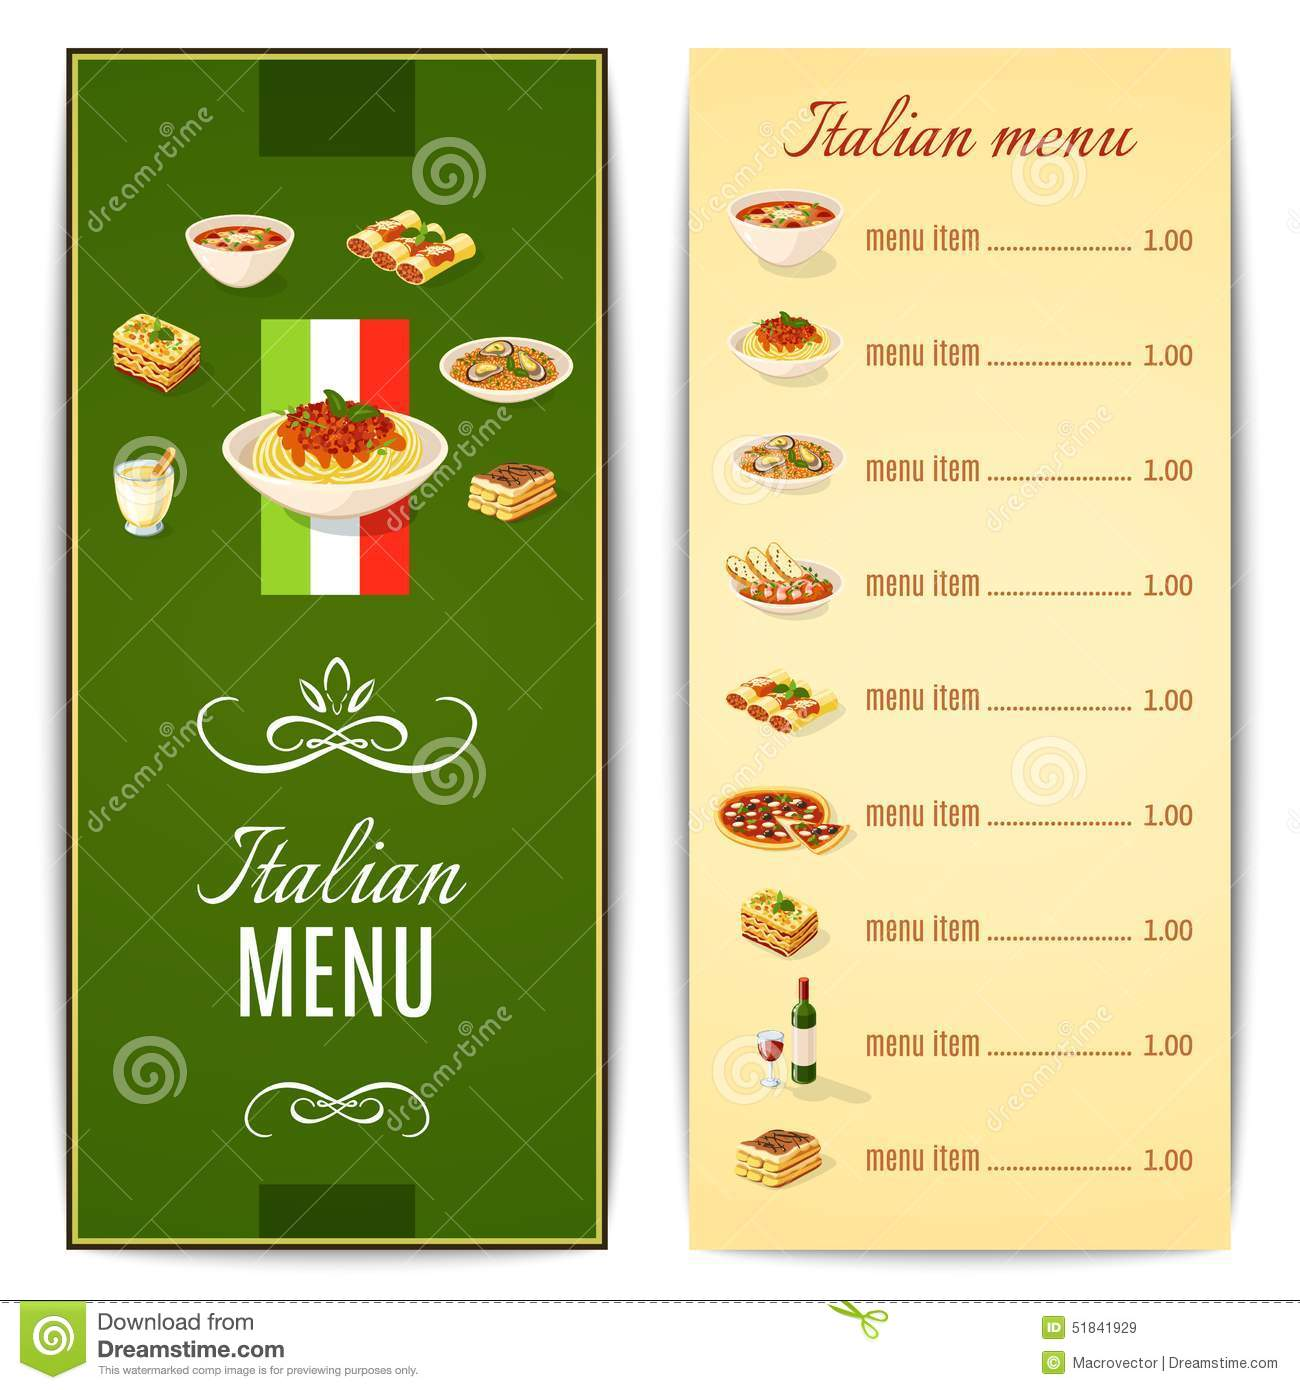 21 Diner Menu Tips Italian Food Menu Stock Vector Illustration Of Background